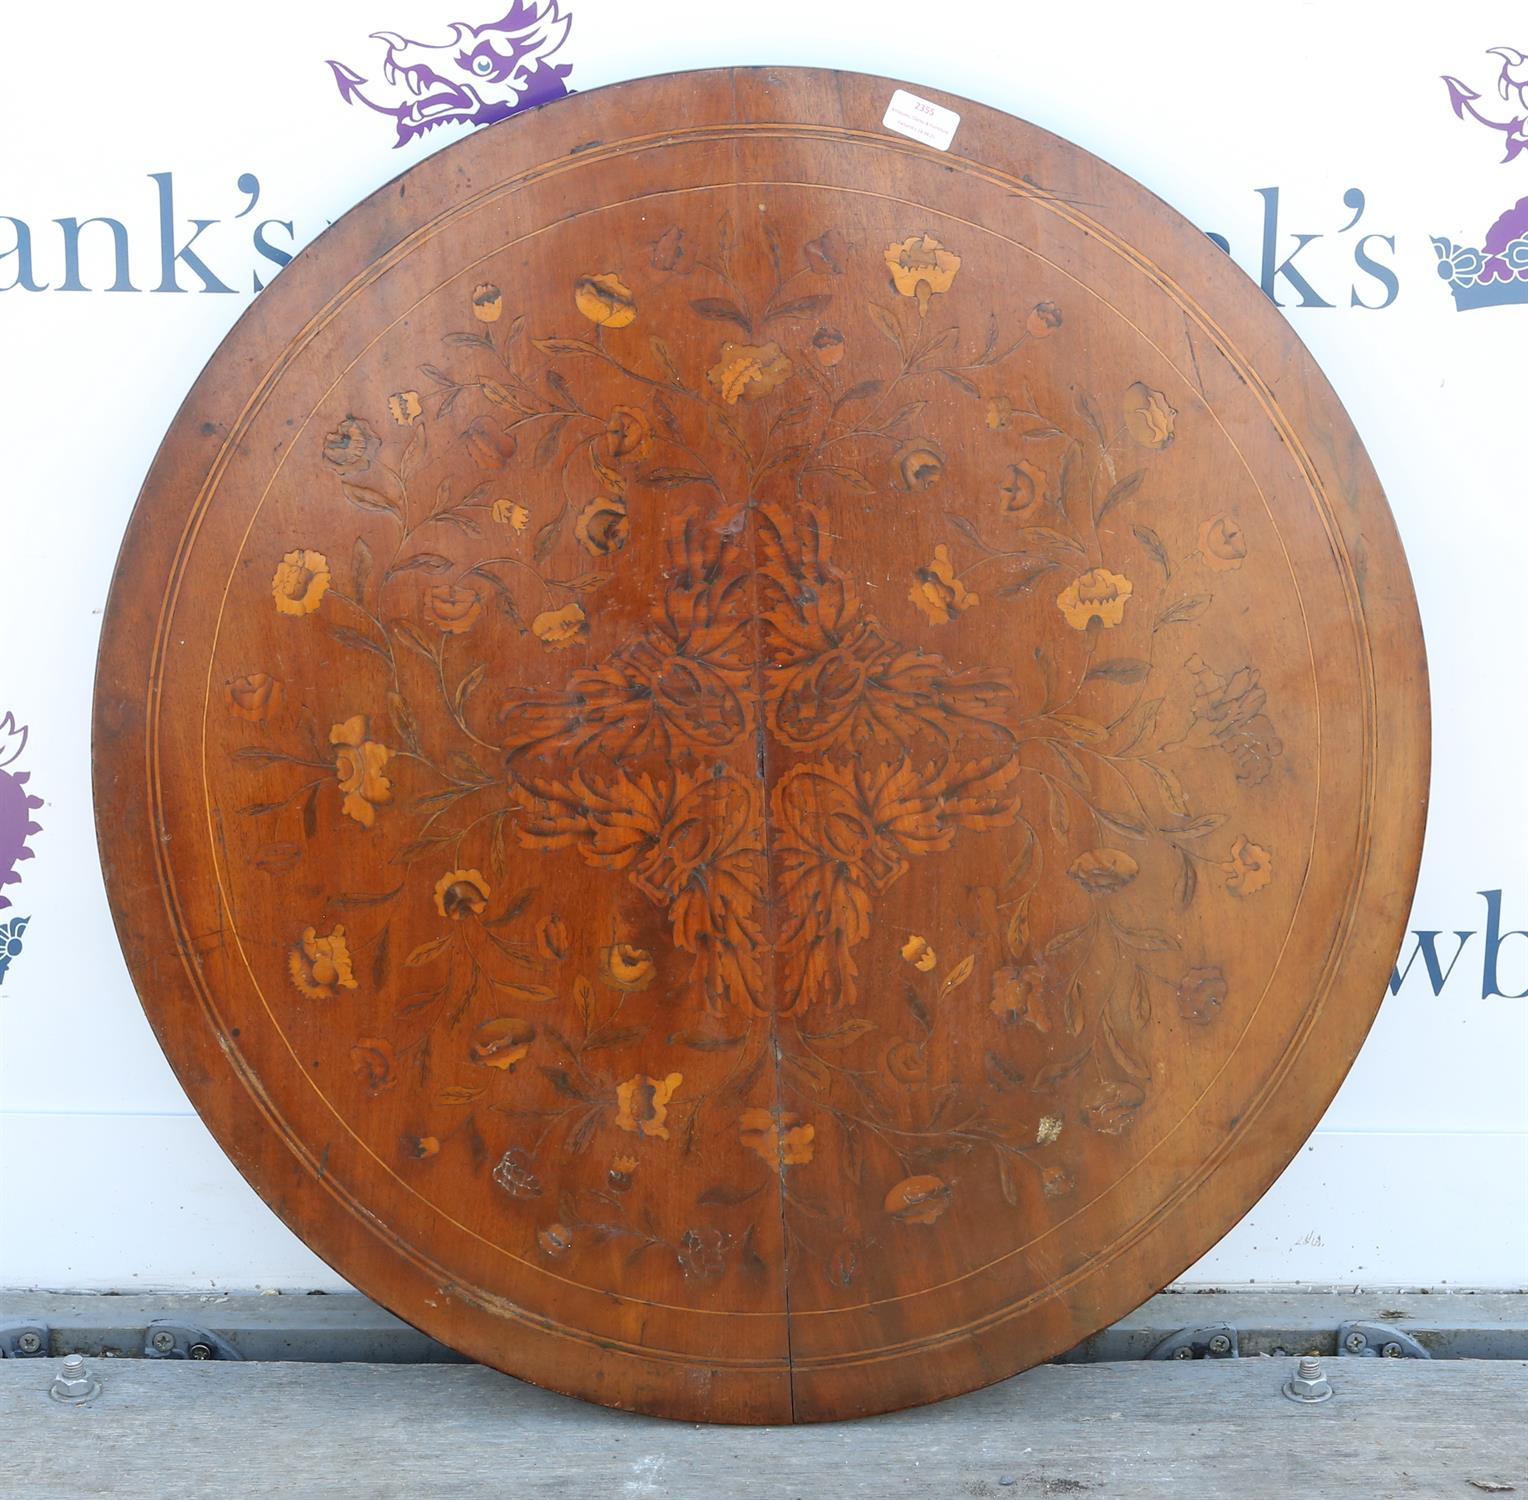 19th century mahogany circular table top, with floral marquetry inlaid decoration, 75cm diameter